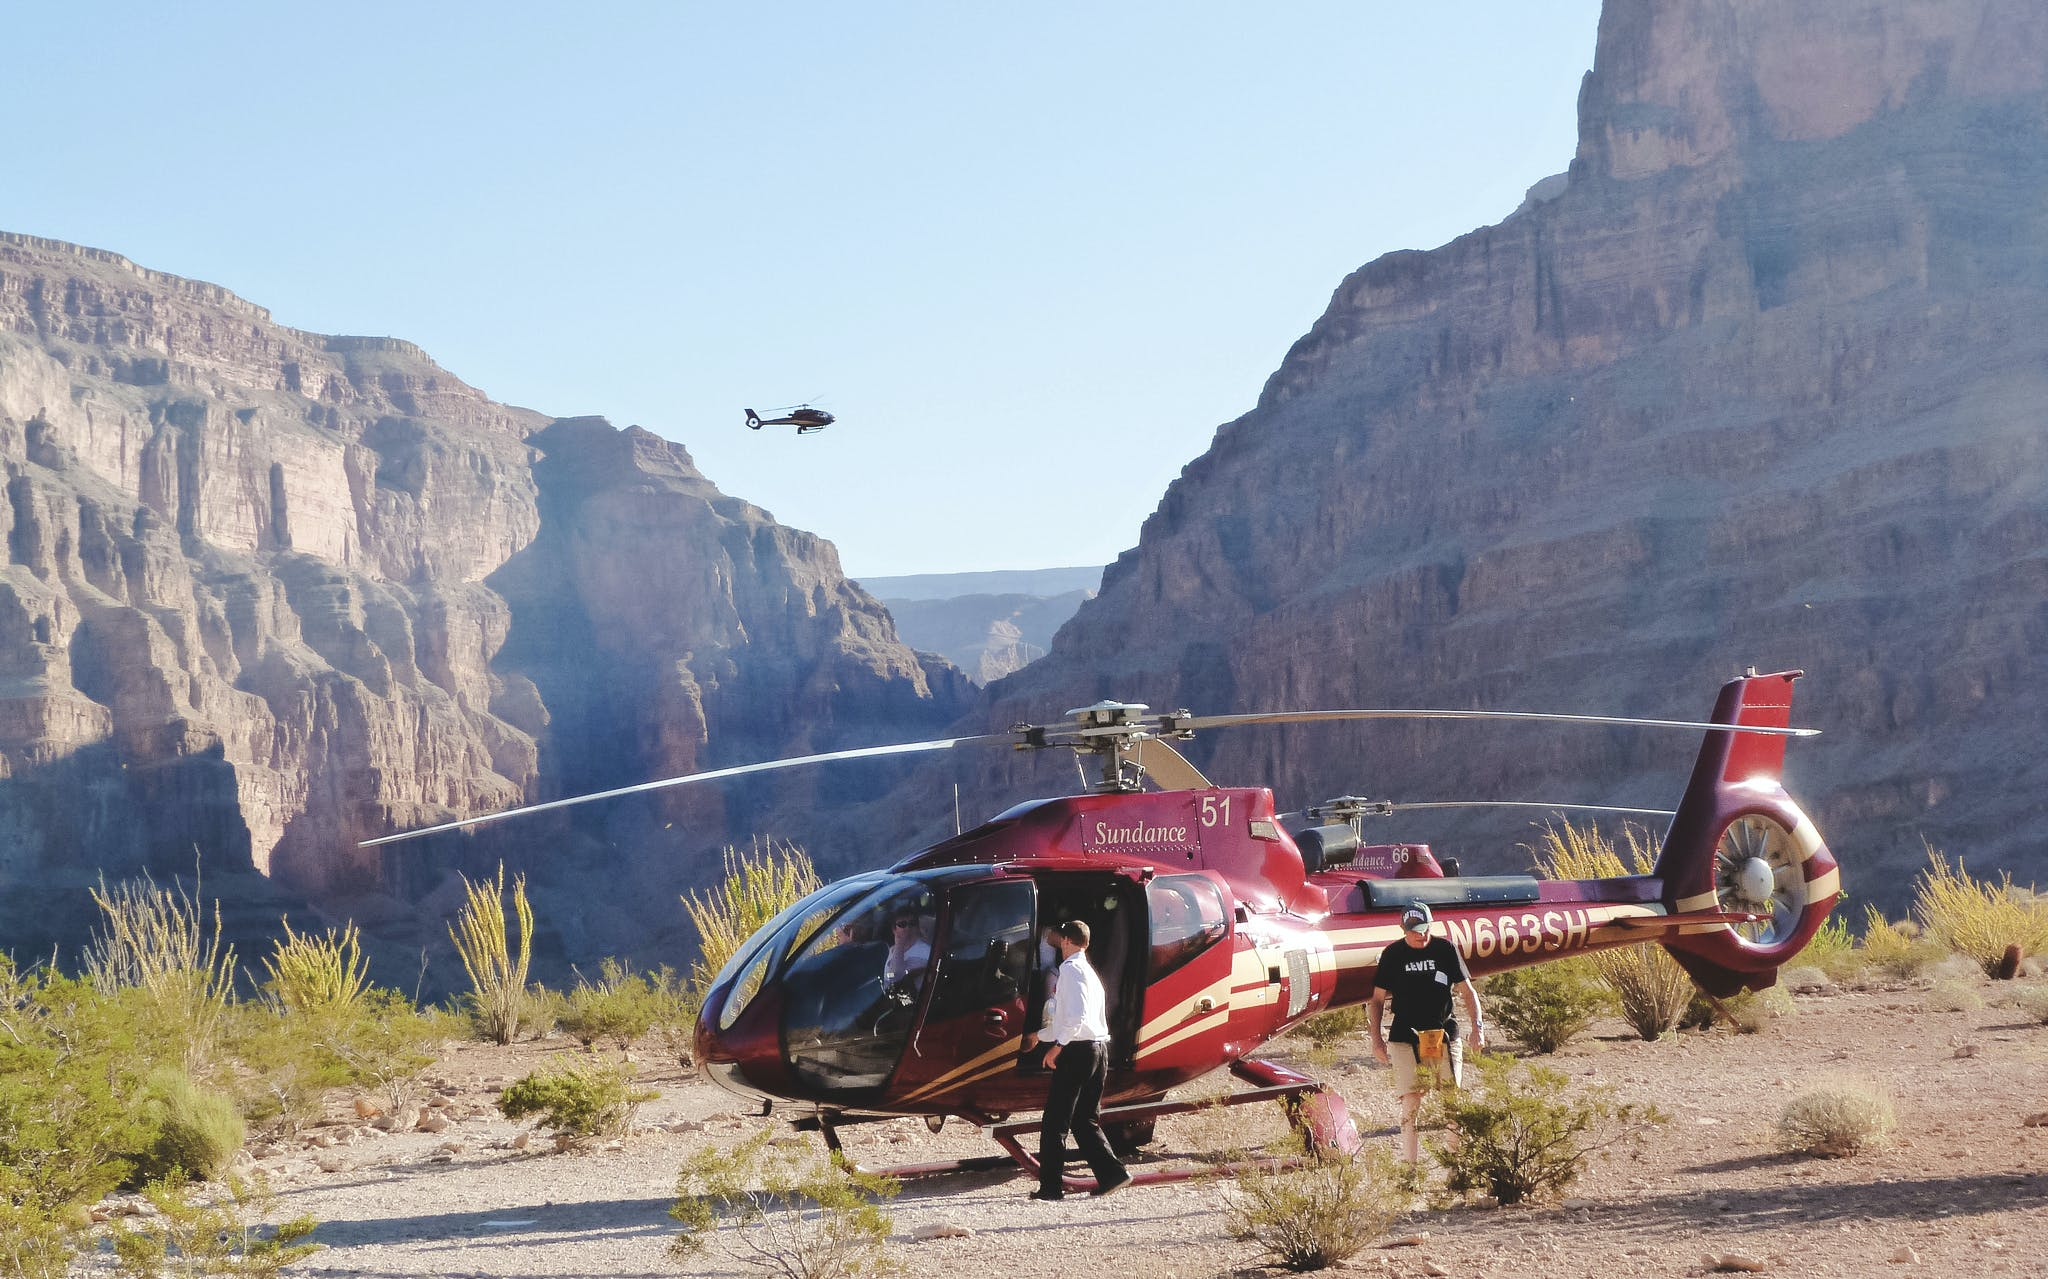 grand canyon west rim heli tour -1